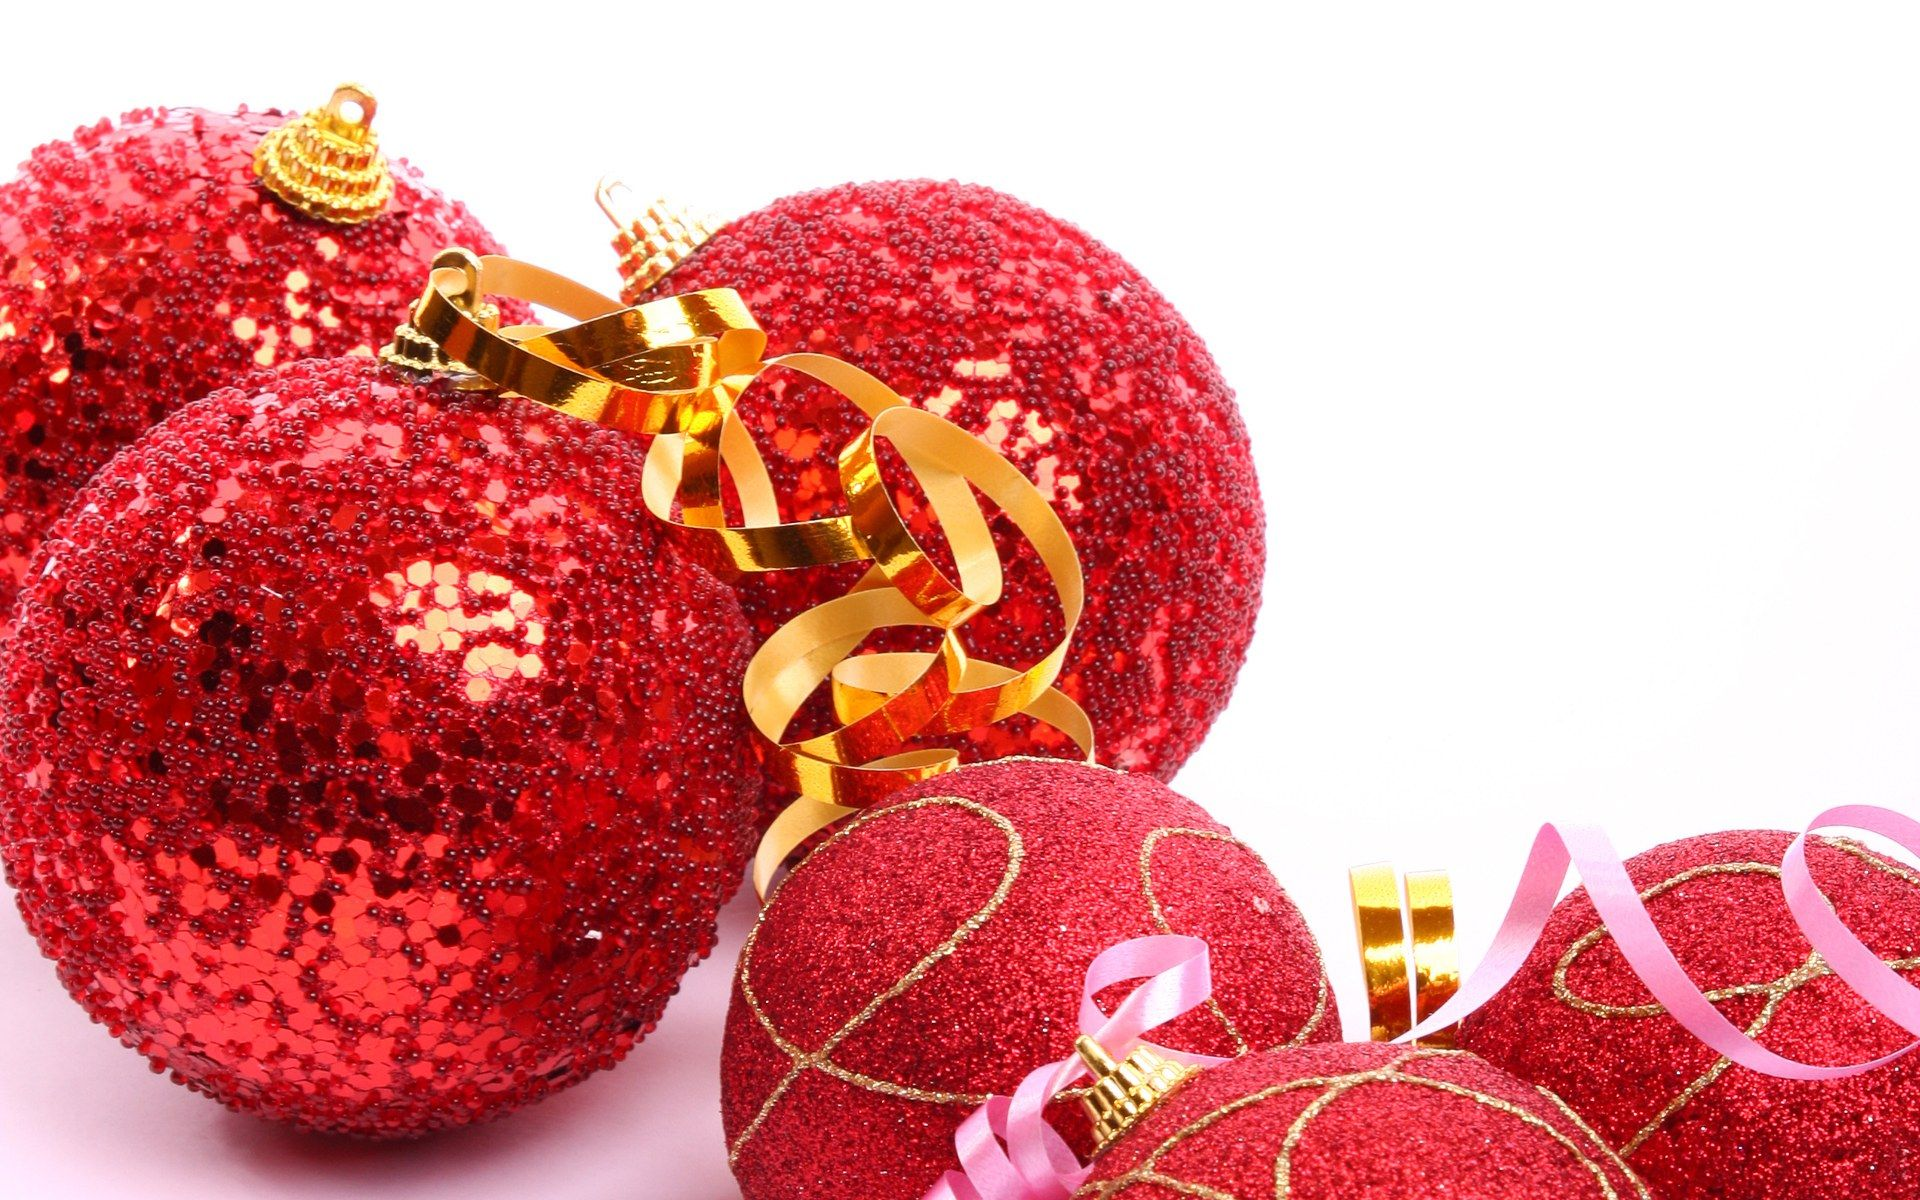 Ball Balls Decorations Christmas Ball Balls Wallpapers Red Bauble Tree Holiday Colorful